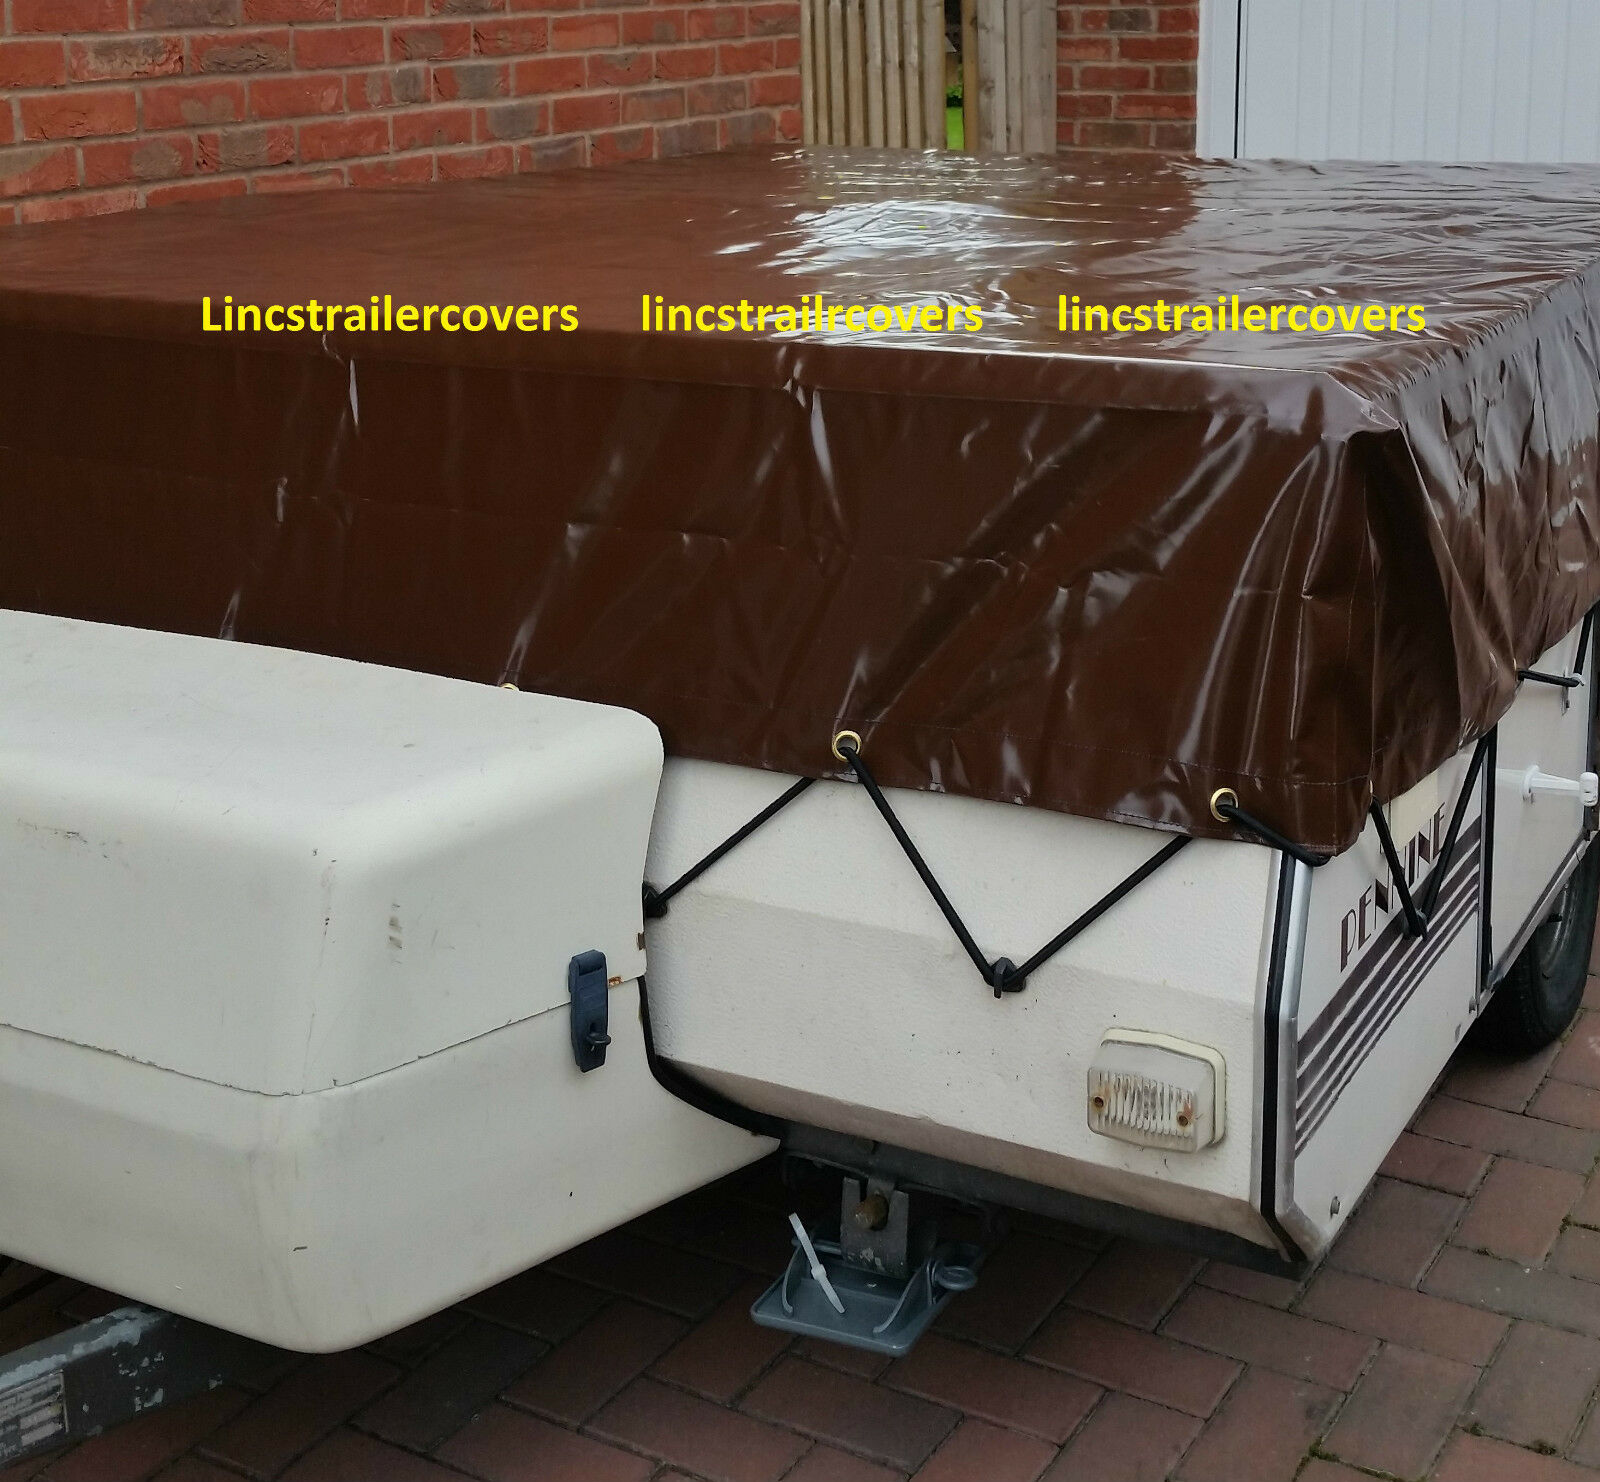 Pennine clubman new cover for a 1984 trailer